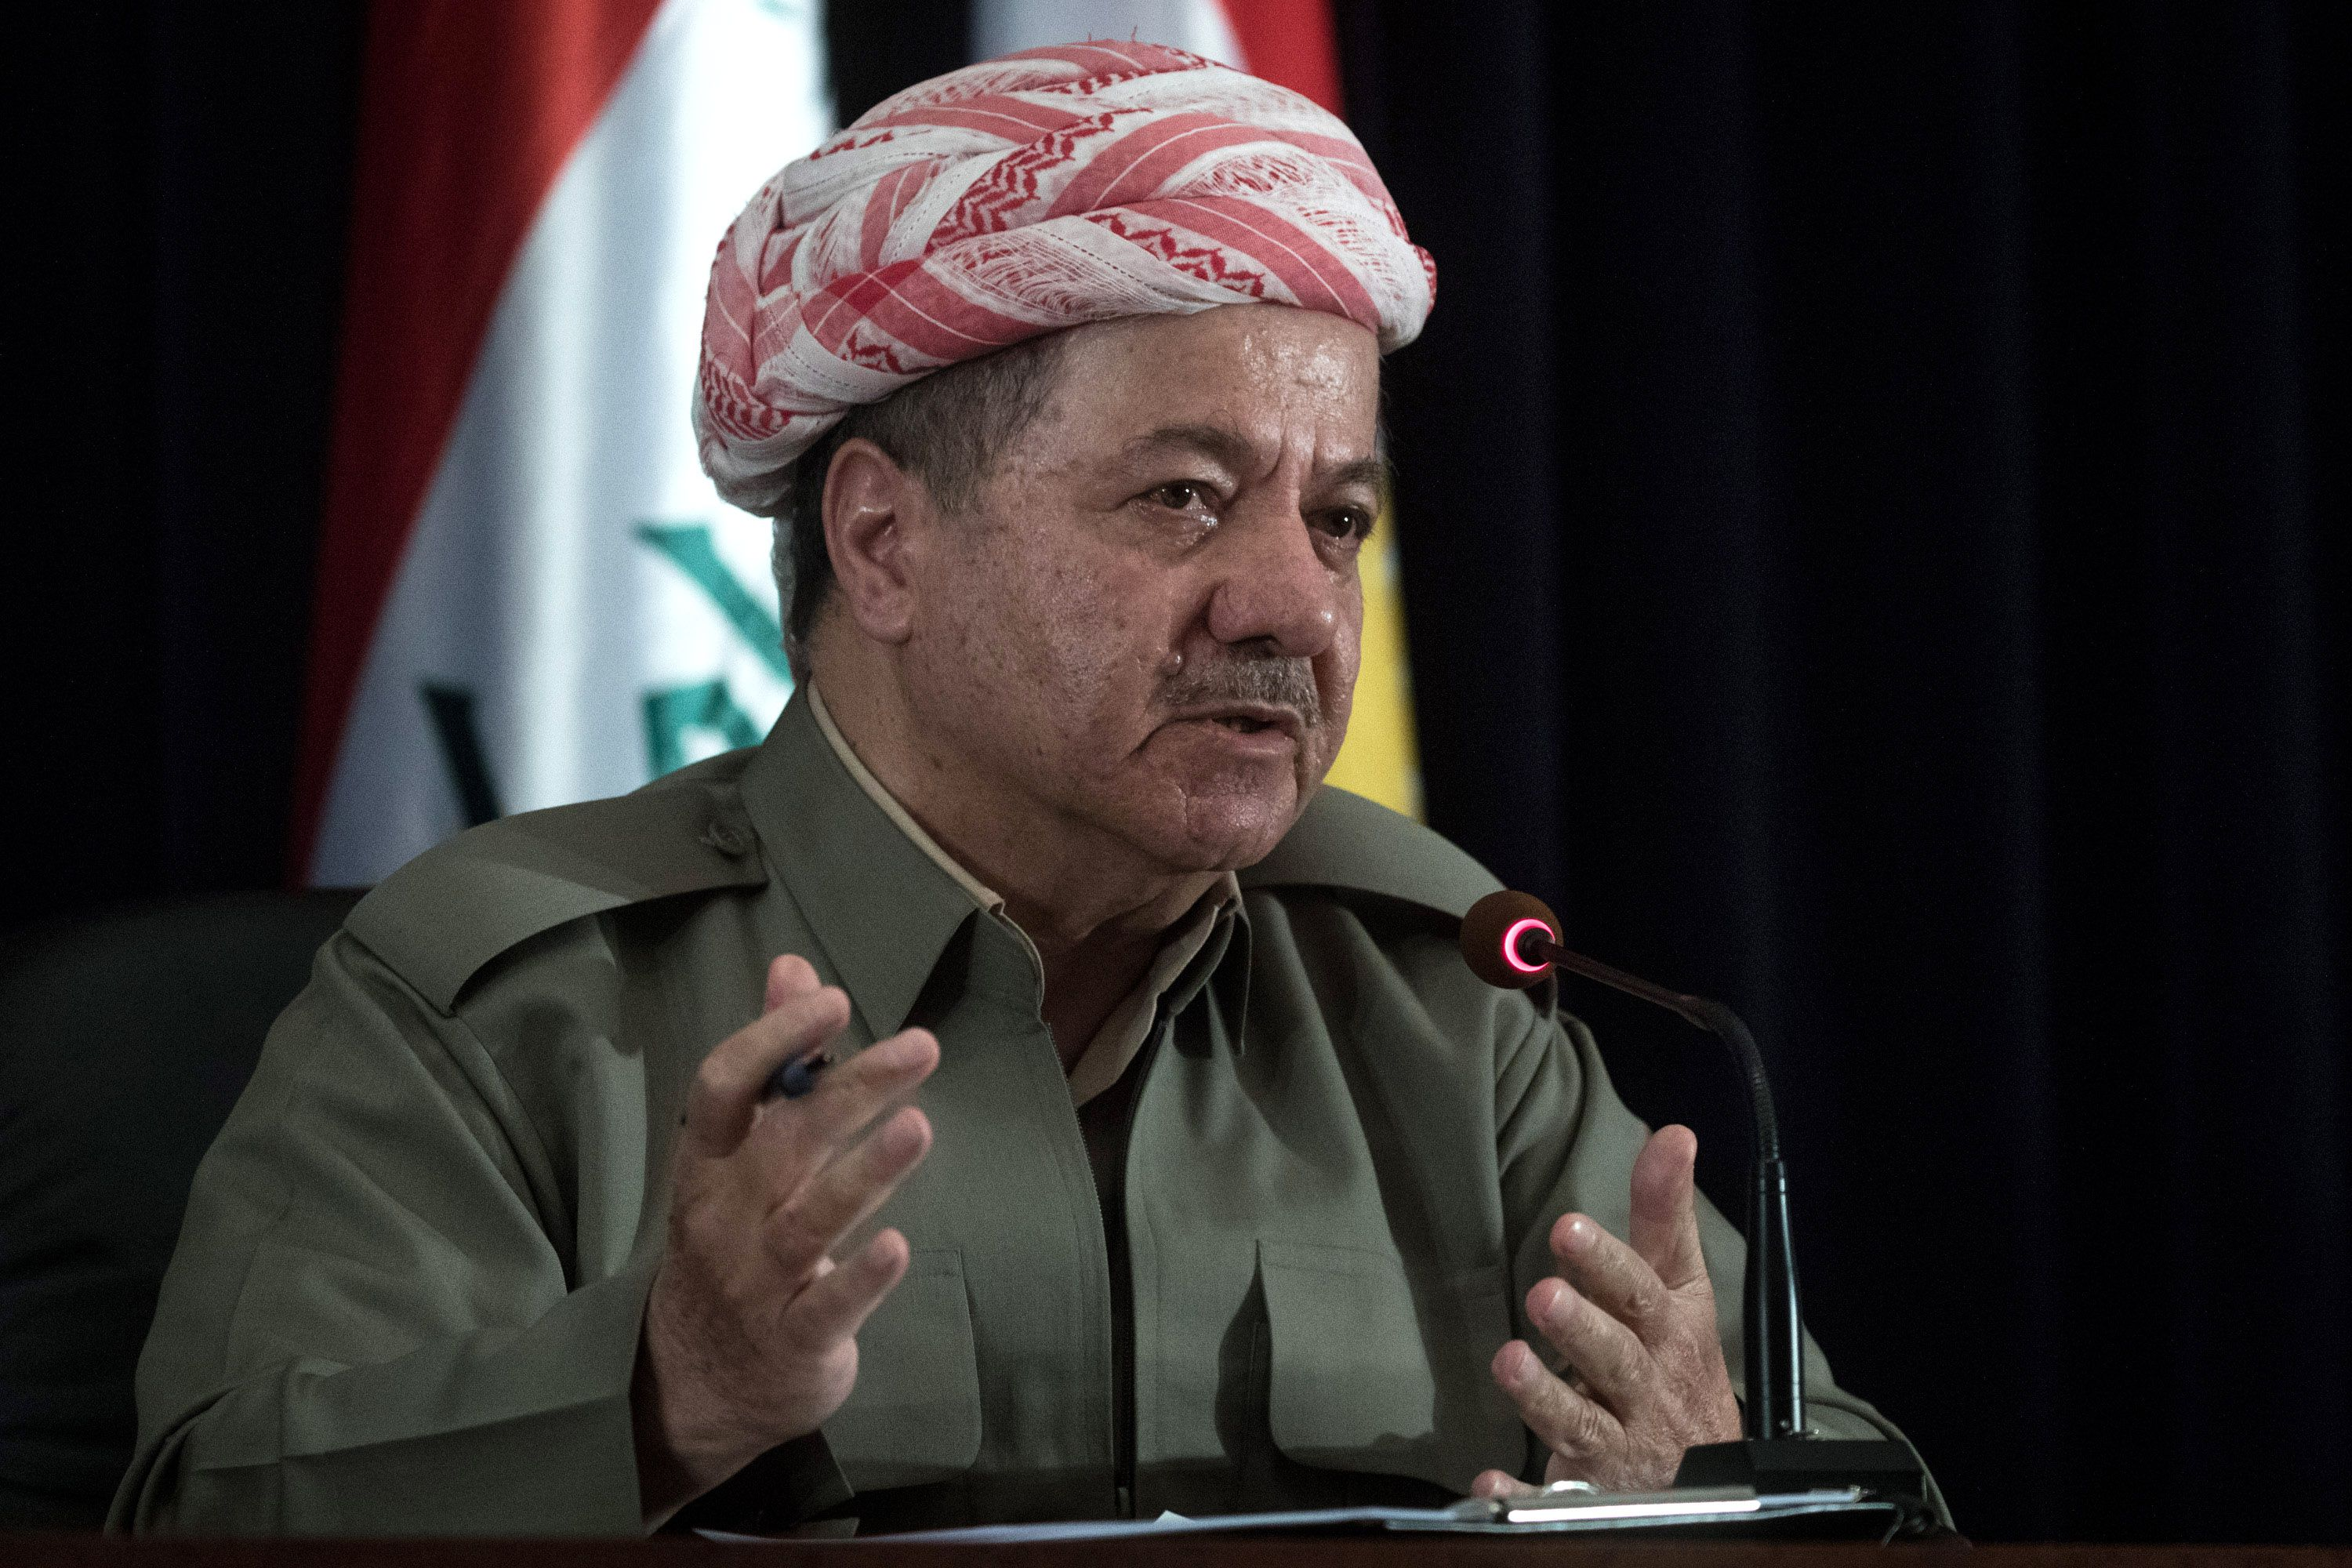 ERBIL, IRAQ - SEPTEMBER 24: Kurdistan President Masoud Barzani speaks to the media at a press conference on September 24, 2017 in Erbil, Iraq. President Barzani announced that the referendum will go ahead as planned. The Kurdish Regional government is preparing to hold the September 25, independence referendum despite strong objection from neighboring countries and the Iraqi government. (Photo by Chris McGrath/Getty Images)